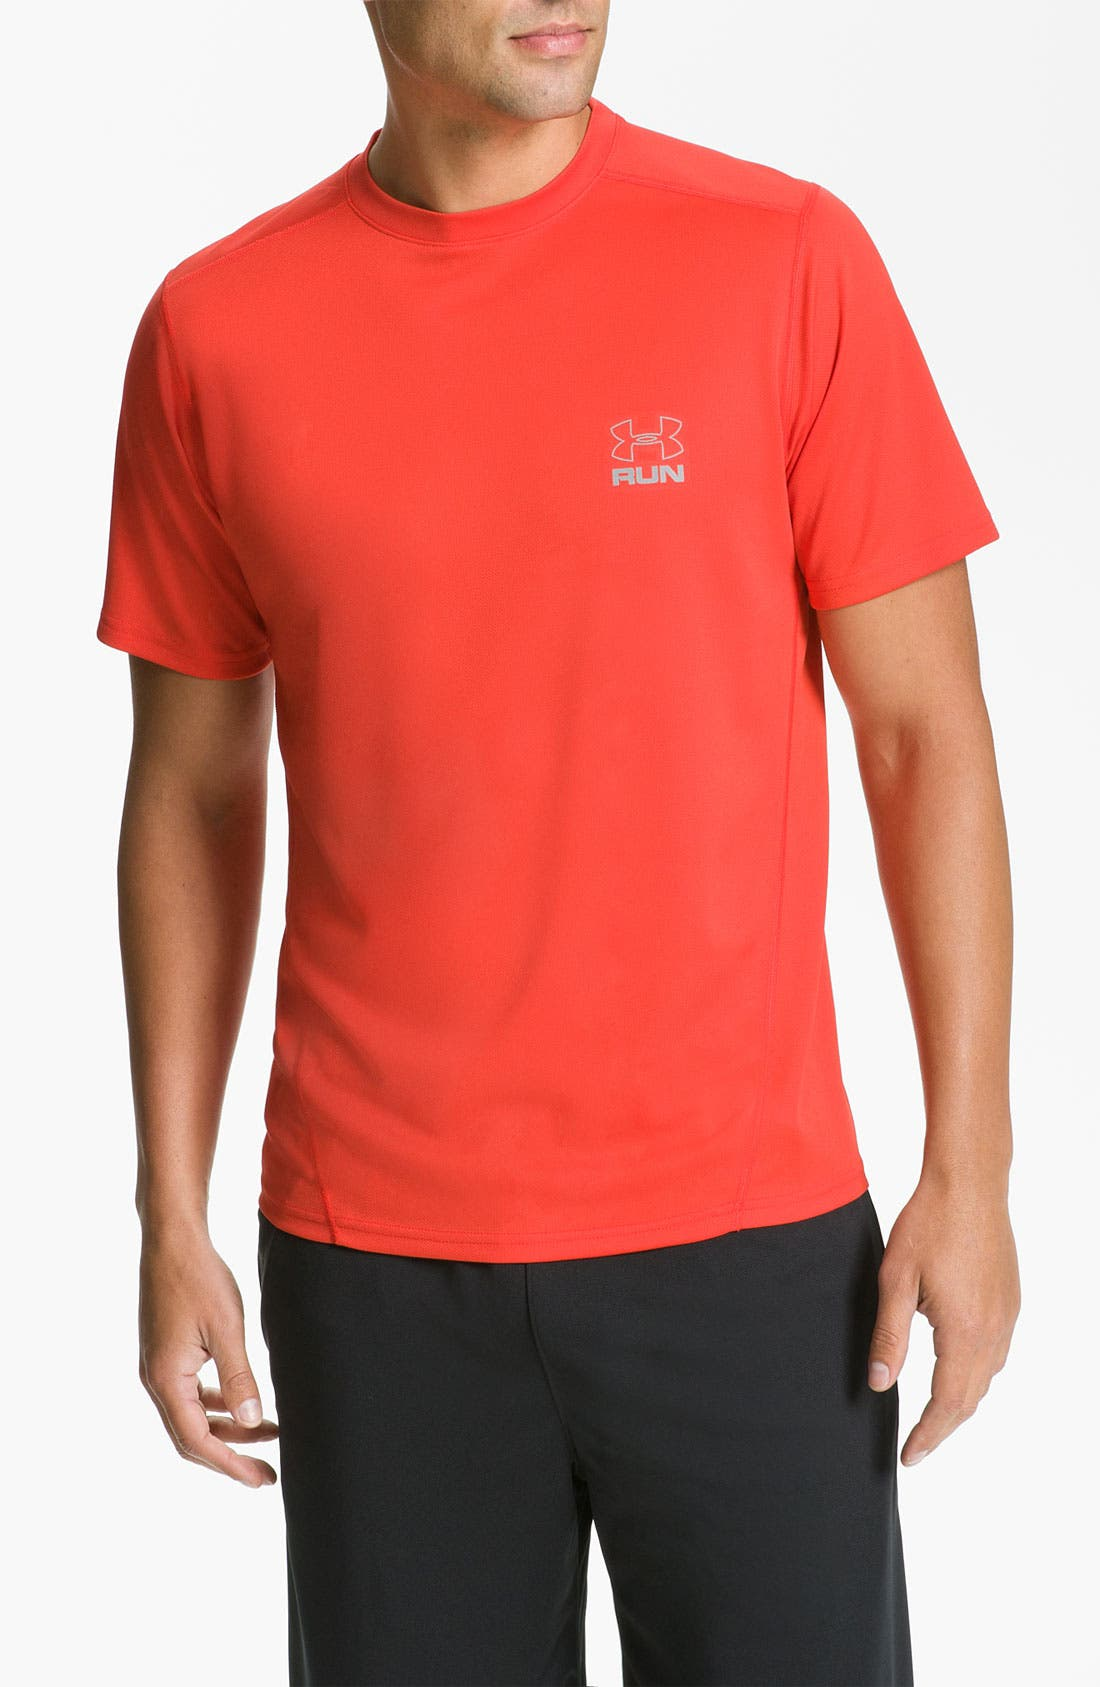 Alternate Image 1 Selected - Under Armour 'Run' HeatGear® Short Sleeve T-Shirt